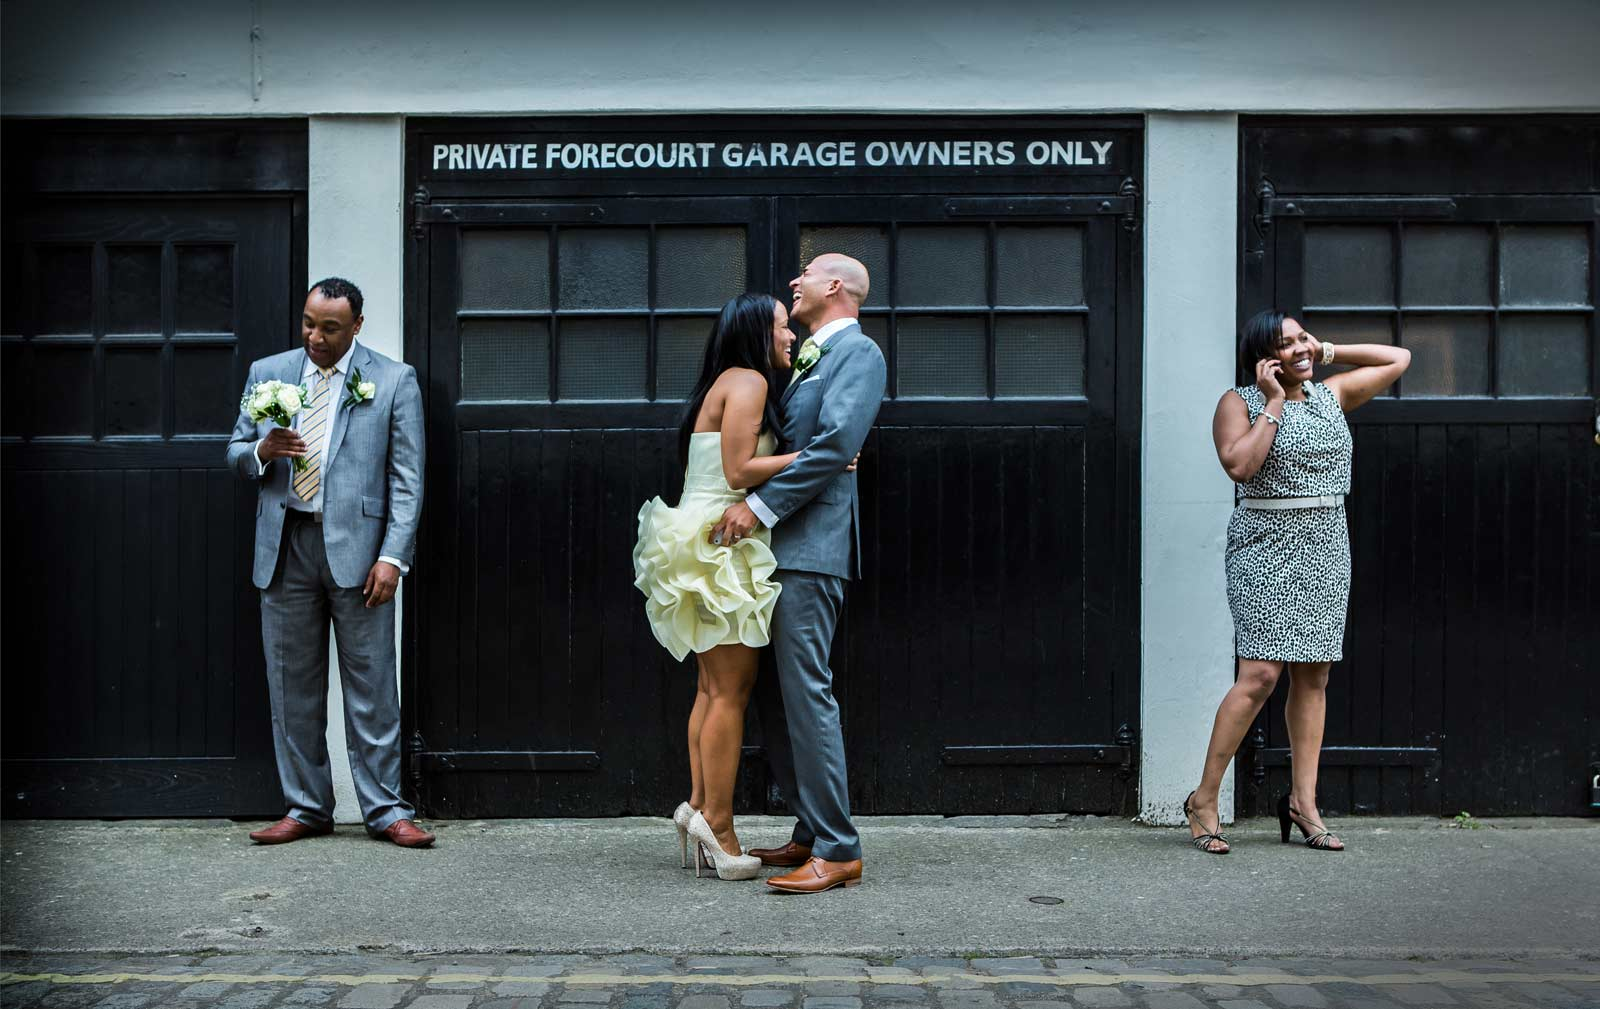 London street scene contact page wedding image